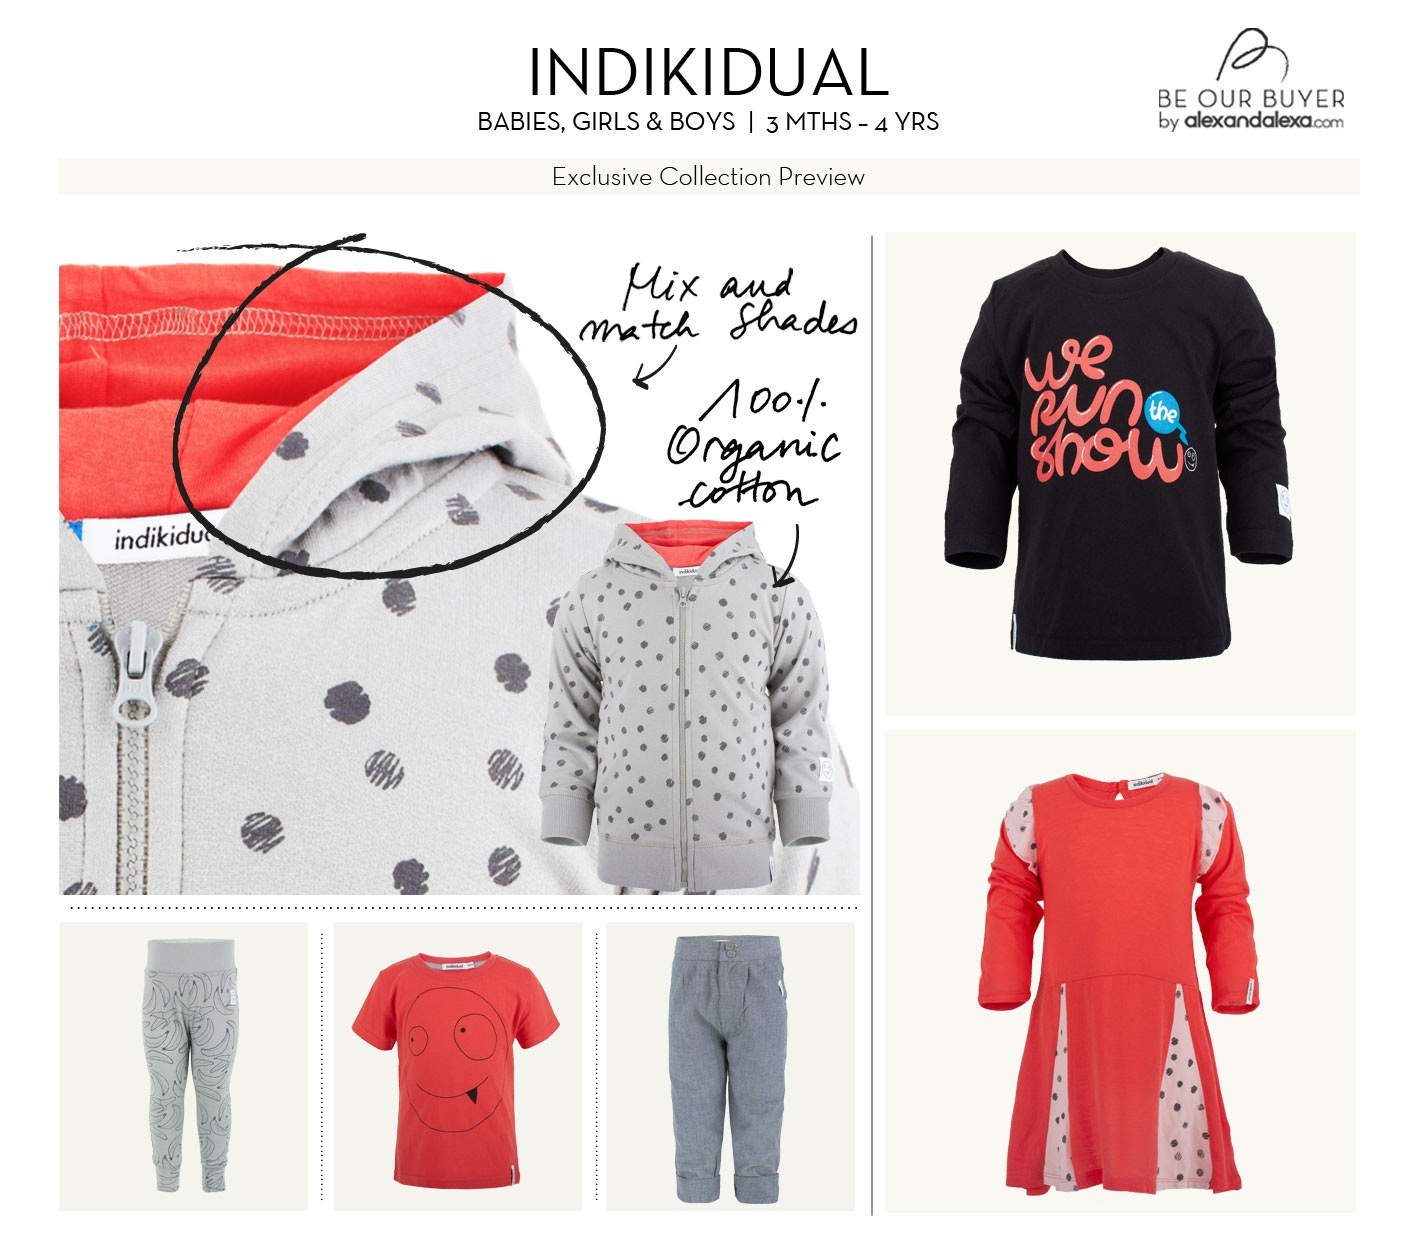 INDIKIDUAL COLLECTION PREVIEW